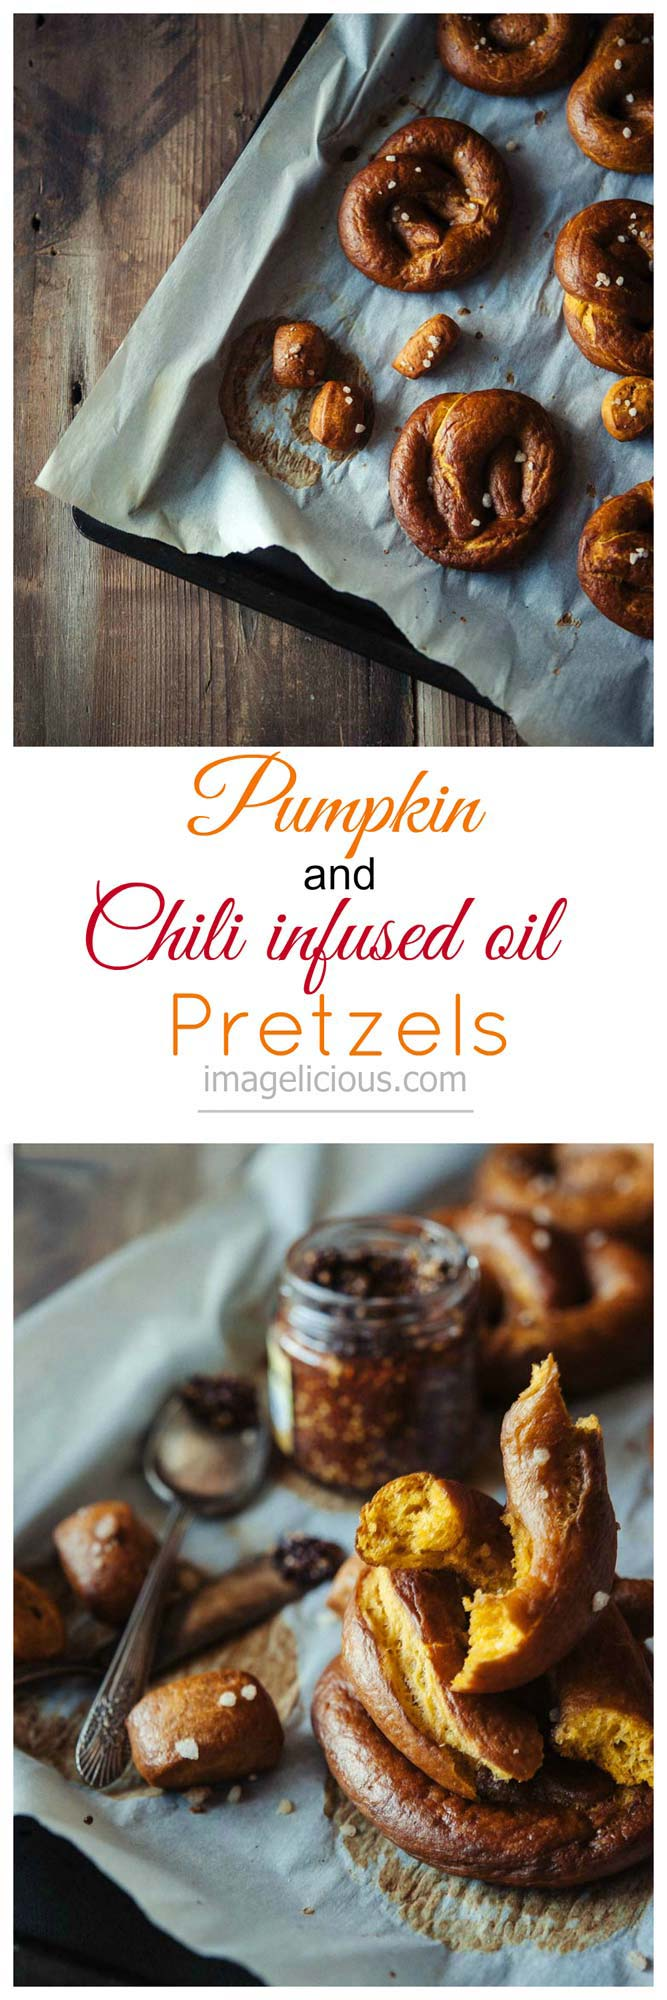 Easy Vegan Pumpkin and Chili infused oil Pretzels - easy, vegan, spicy and delicious pretzels, perfect for cozy fall weekends or any time of the year. Great snack or accompaniment to dinner or BBQ | Imagelicious